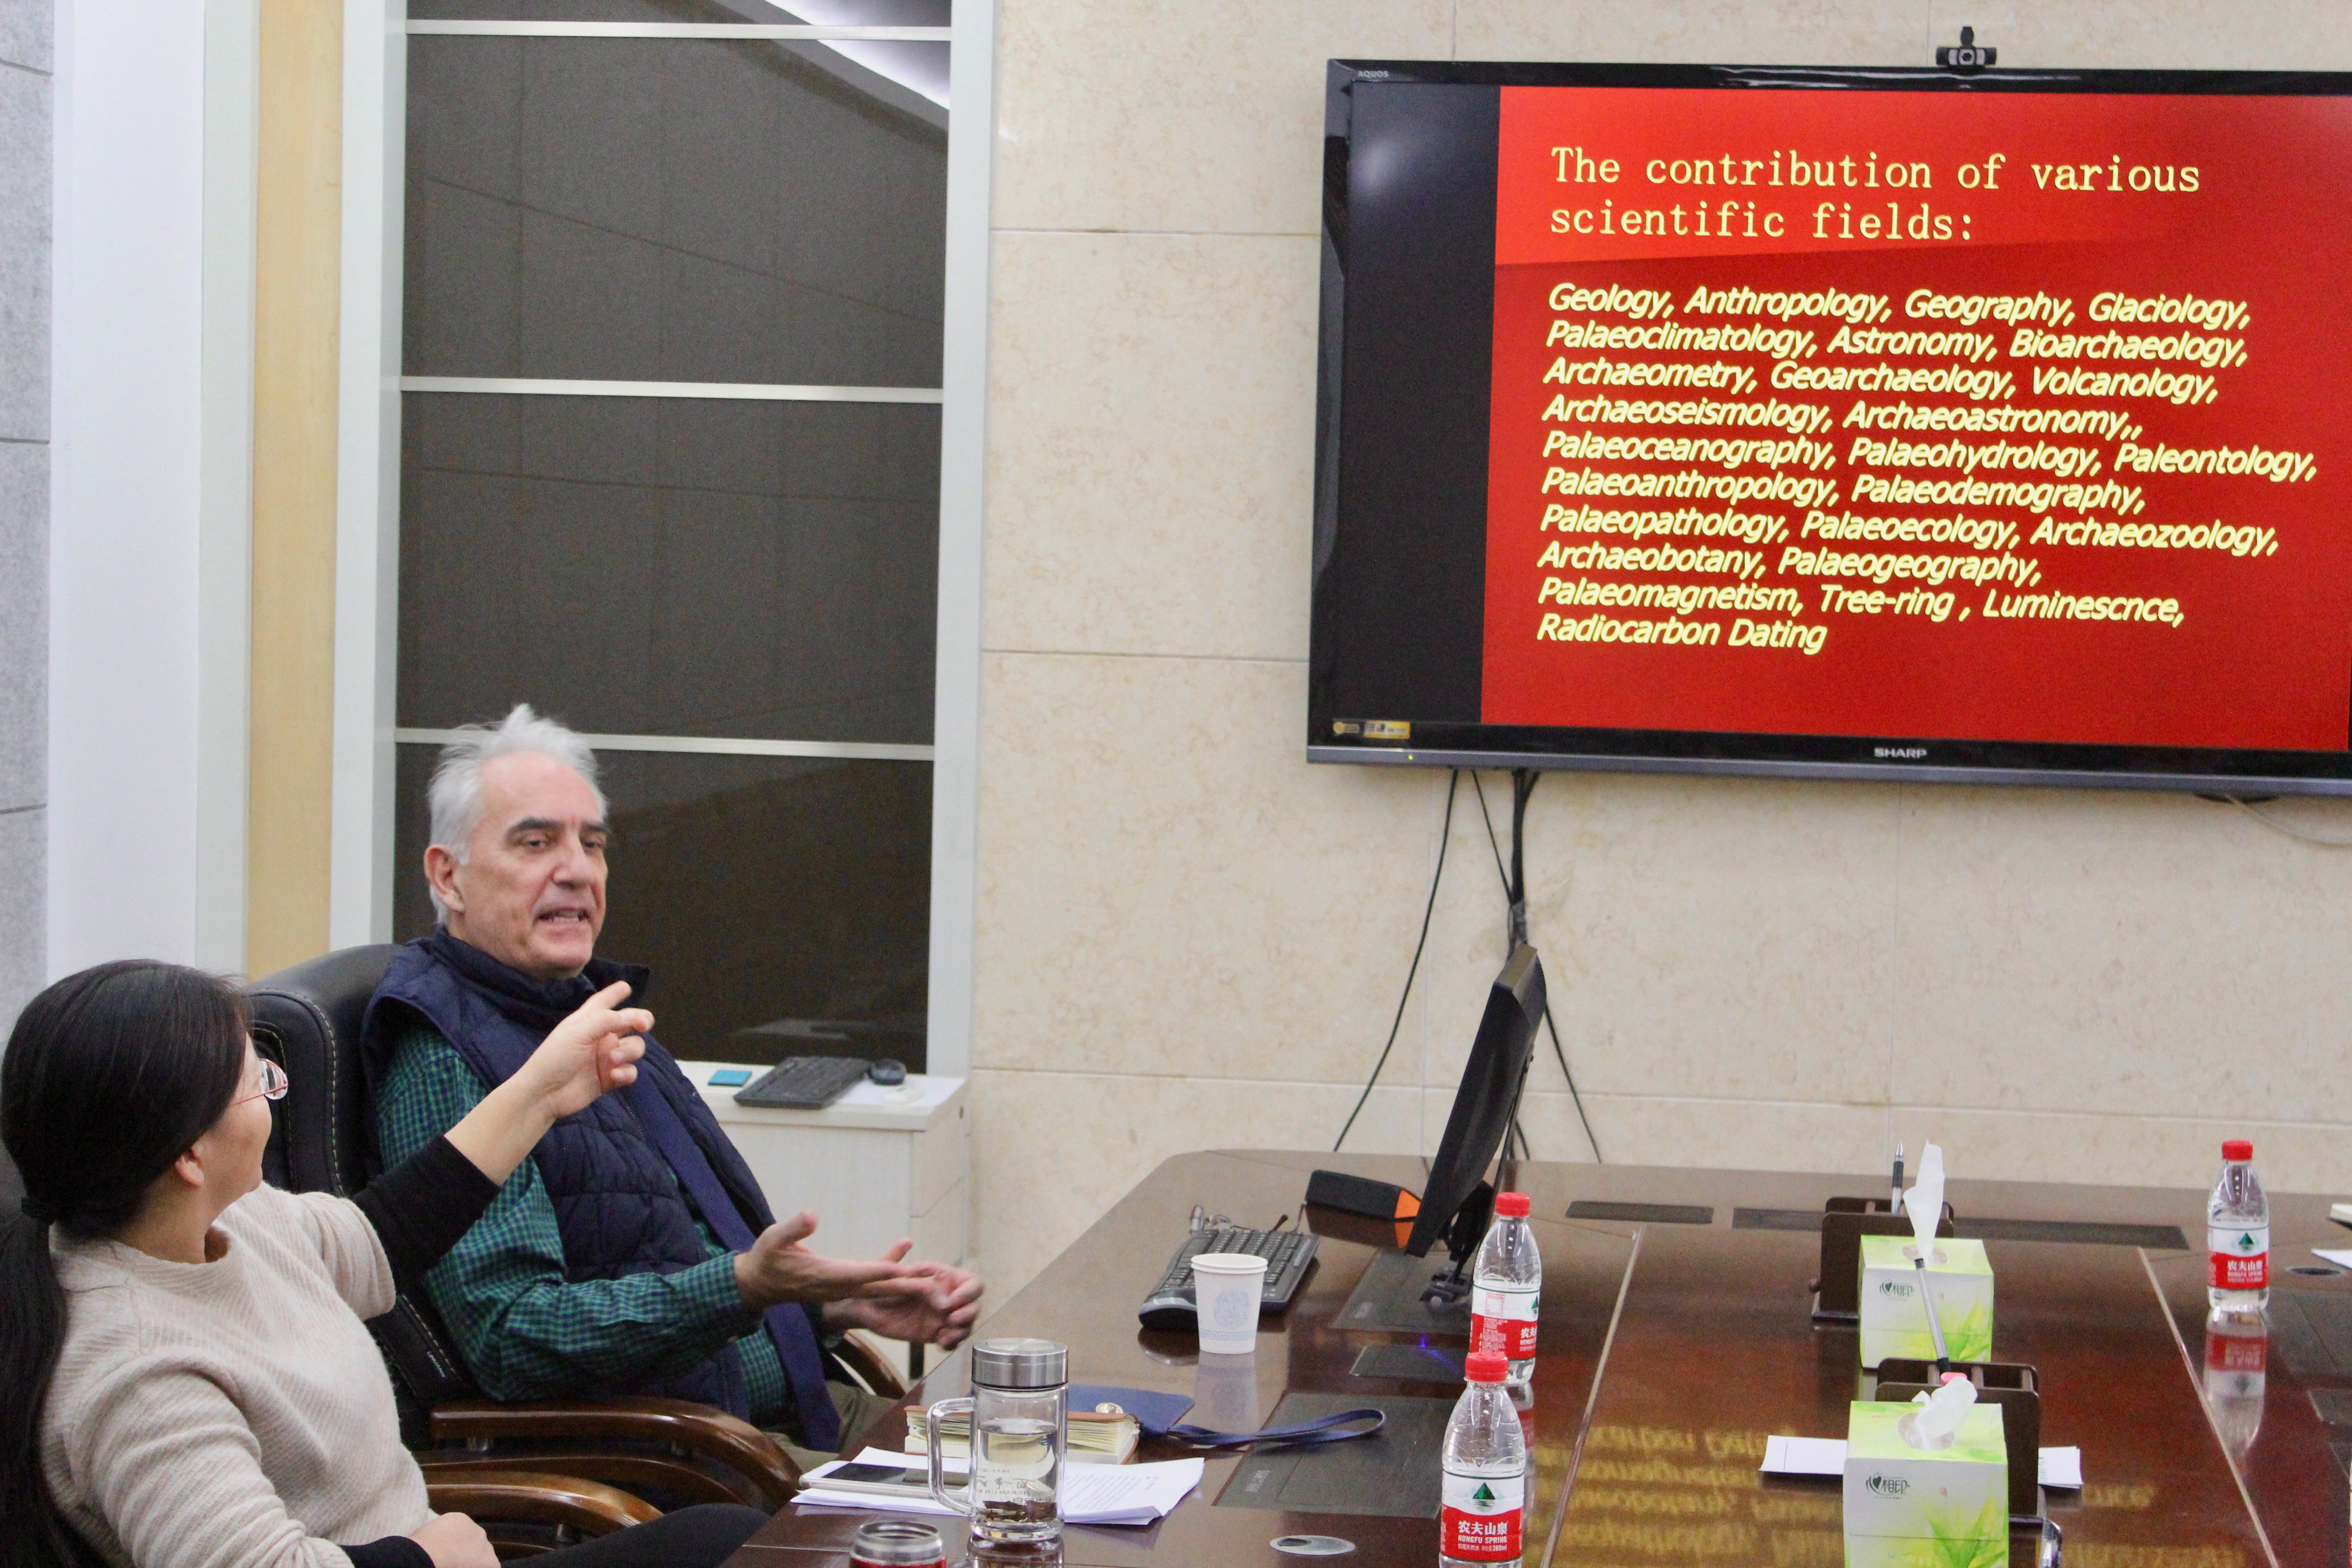 Intensive course on novel approaches to archaeological science by Prof. Liritzis